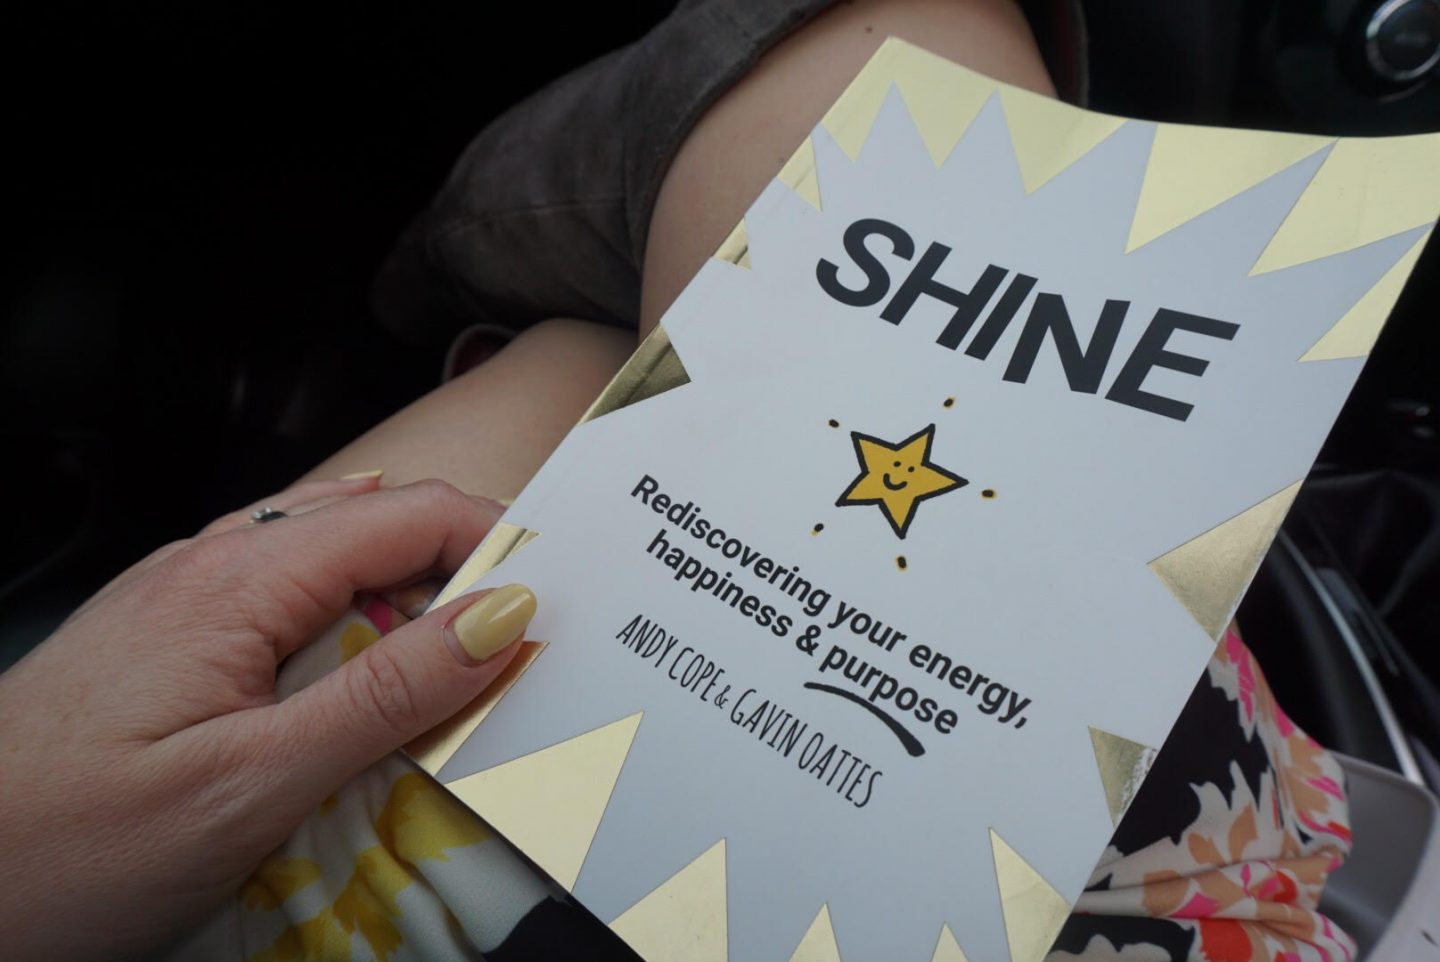 The book that made me want to be a better person – SHINE